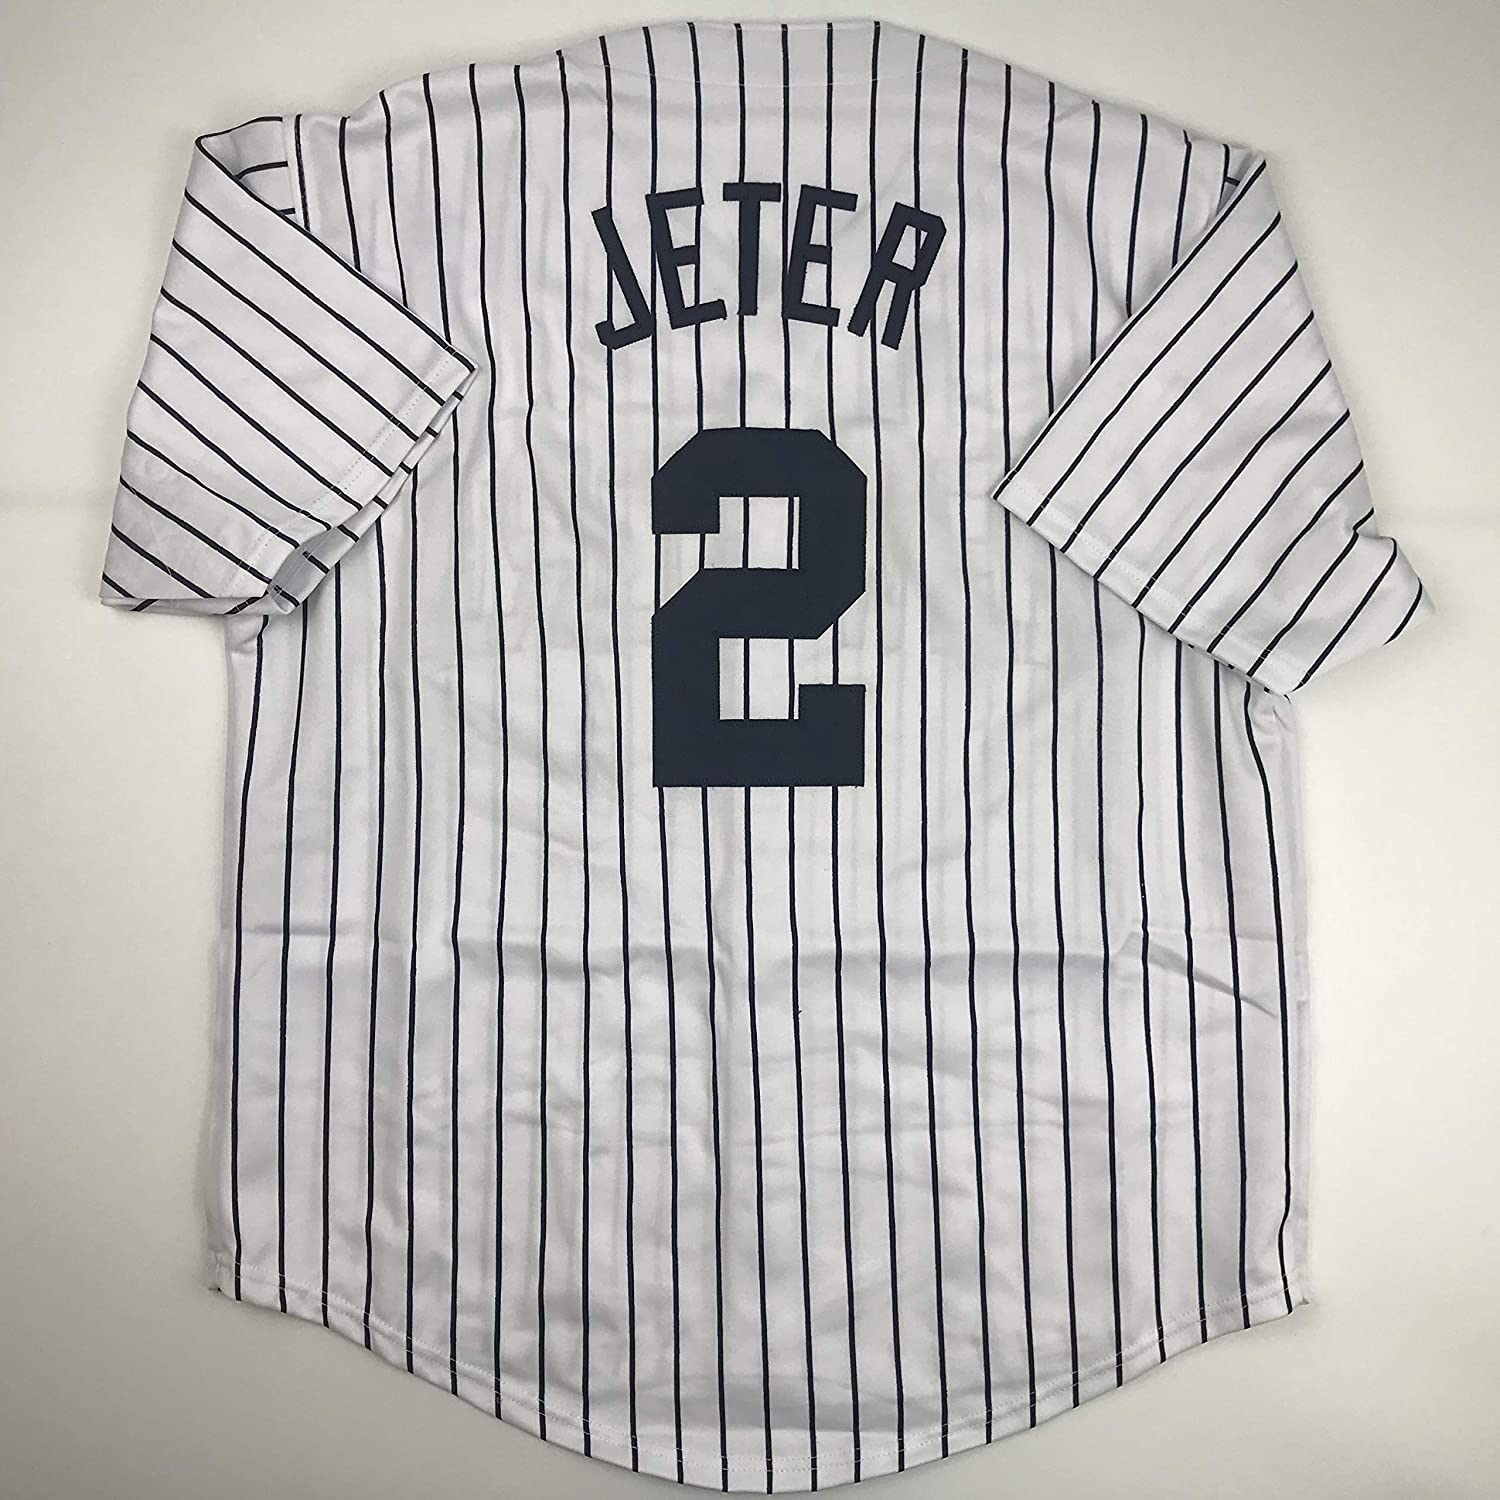 detailed look 6b033 a4113 Unsigned Derek Jeter New York Pinstripe Custom Stitched ...